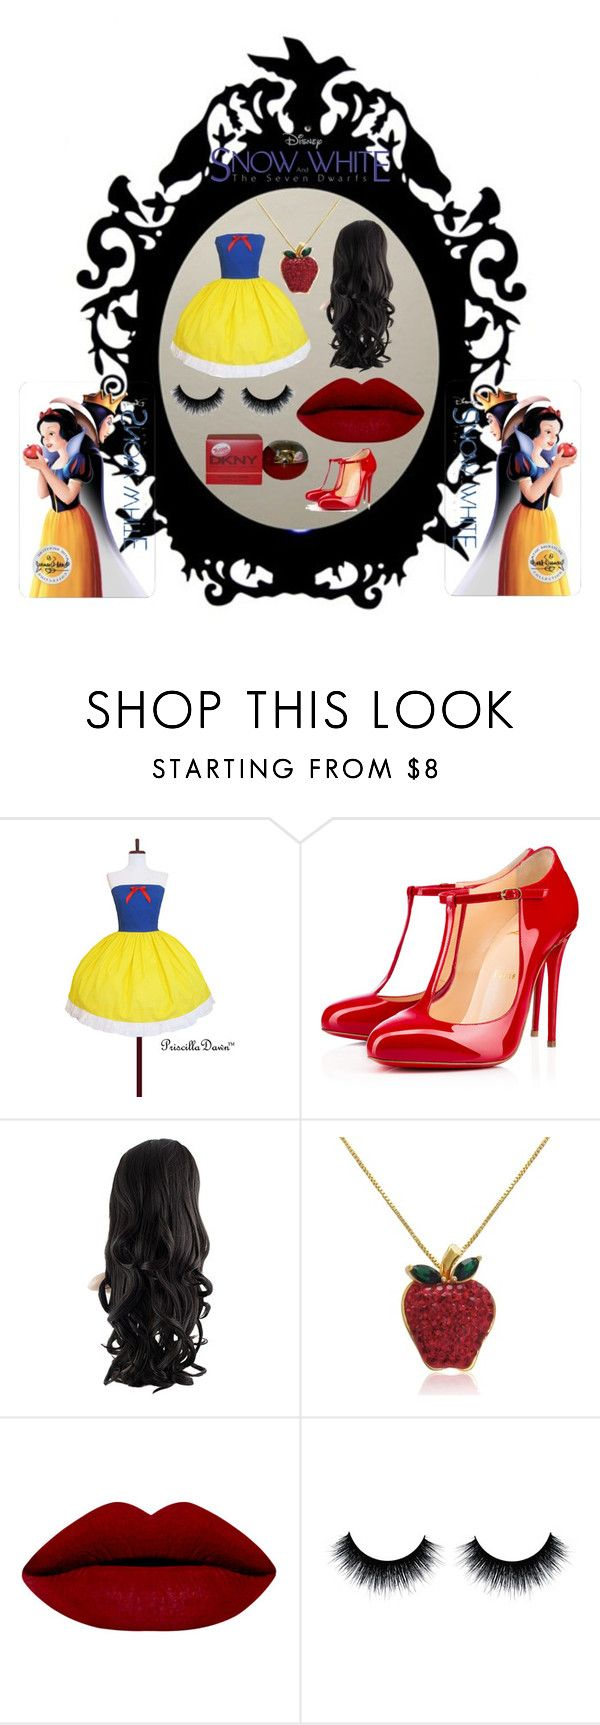 """""""snow white x"""" by dordiek ❤ liked on Polyvore featuring Christian Louboutin, Amanda Rose Collection, DKNY, women's clothing, women's fashion, women, female, woman, misses and juniors"""